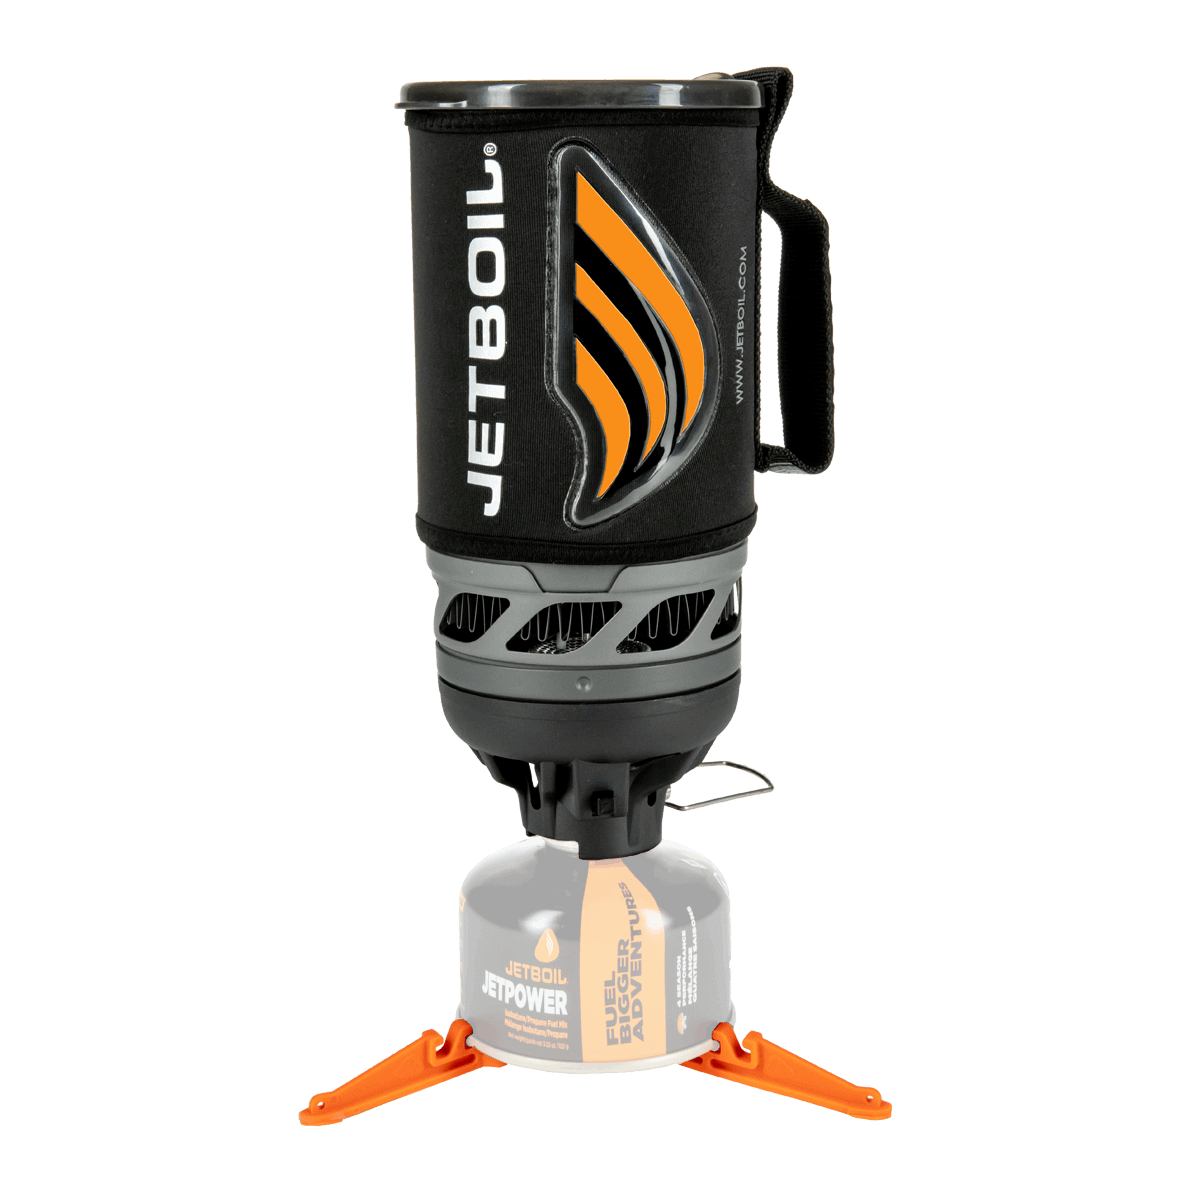 Jetboil Flash Carbon stove with orange heat indicator on stand